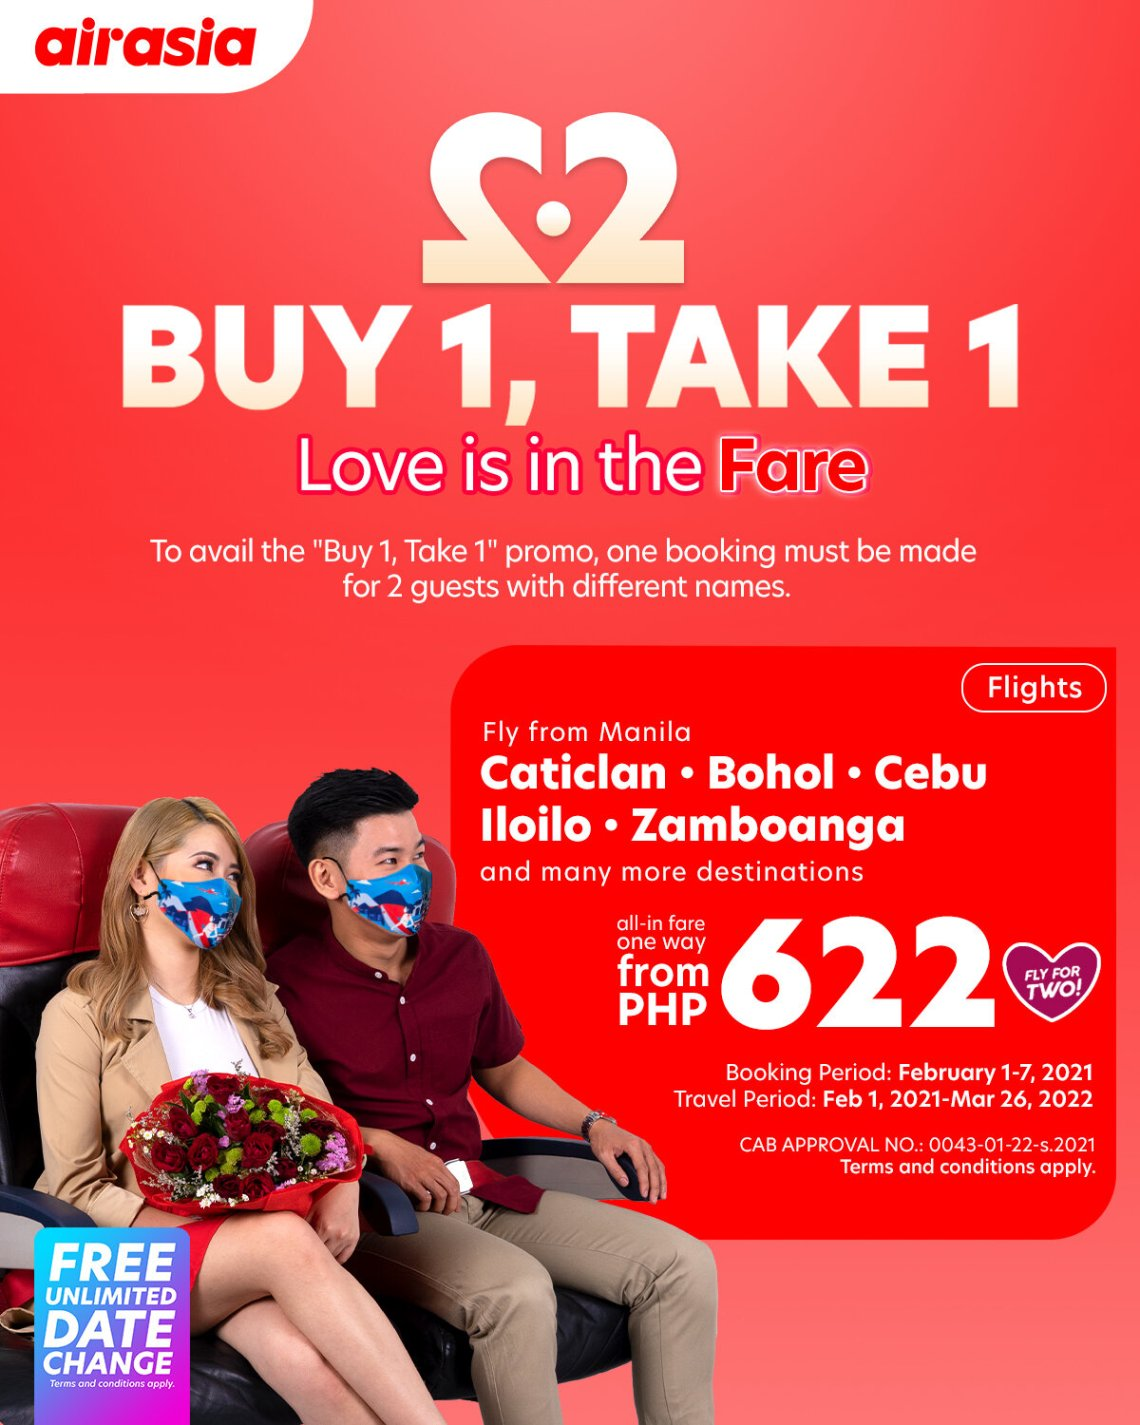 FA B1T1 Love is in the FARE KV SMPOST JAN2021.jpg